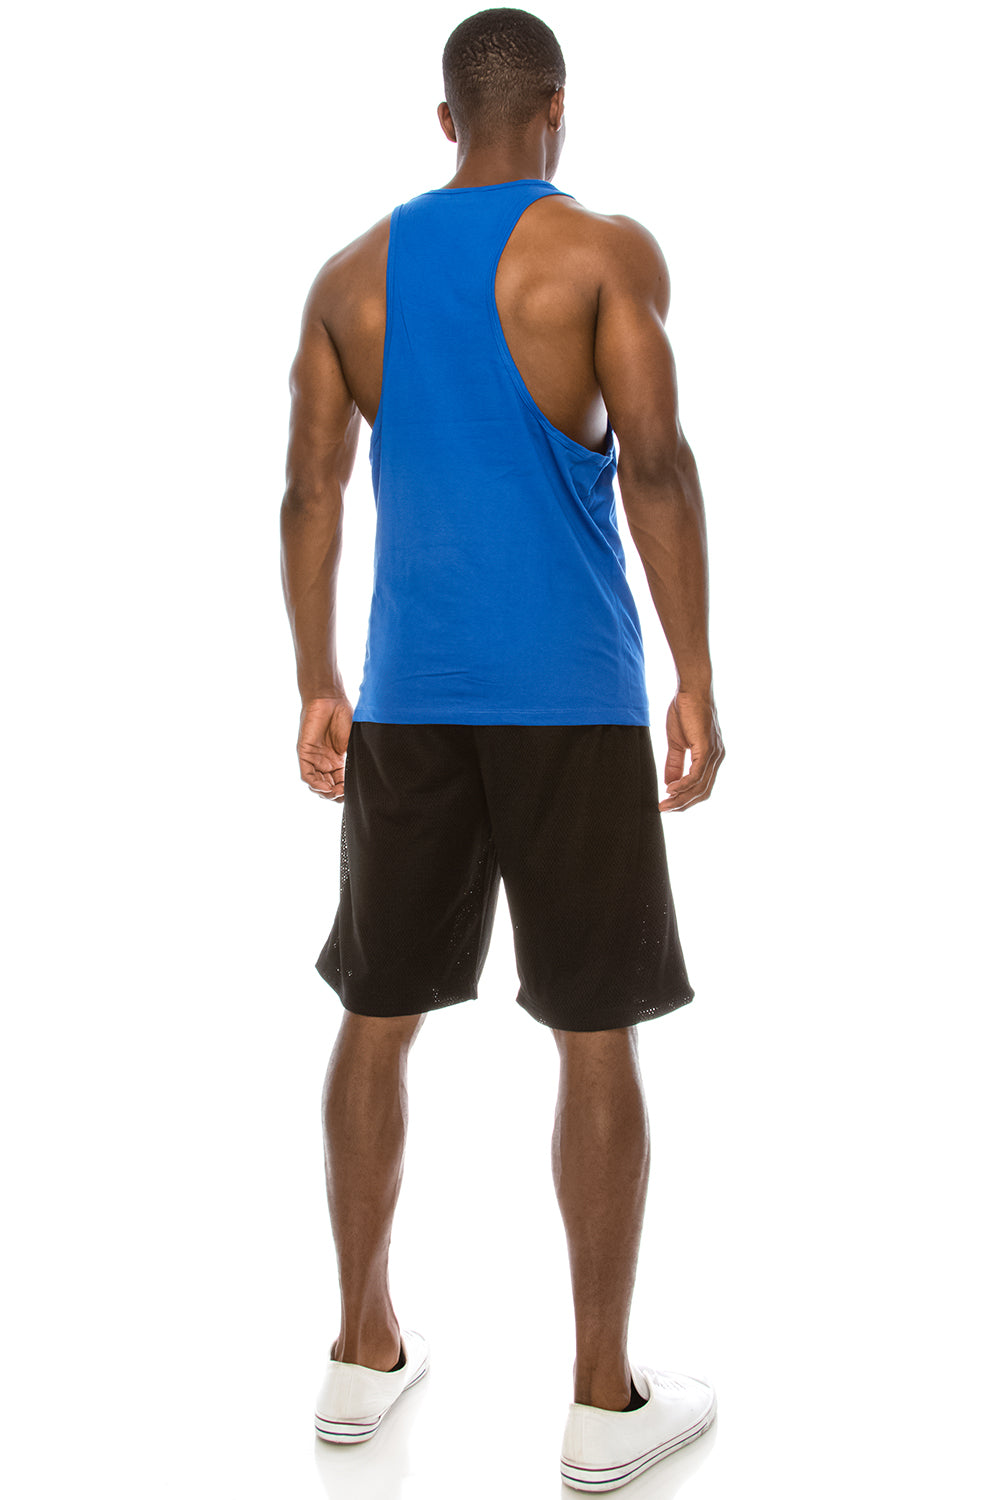 Unisex Workout Deep Cut Muscle Tank Top (Royal)